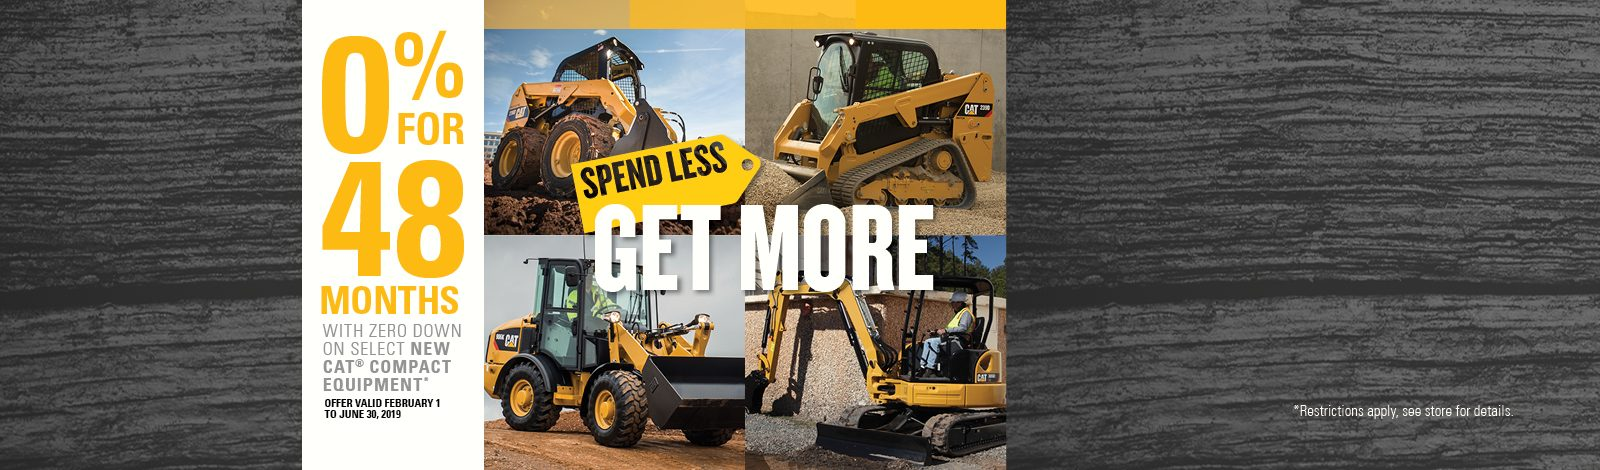 Cat Compact Equipment Spend Less Get More